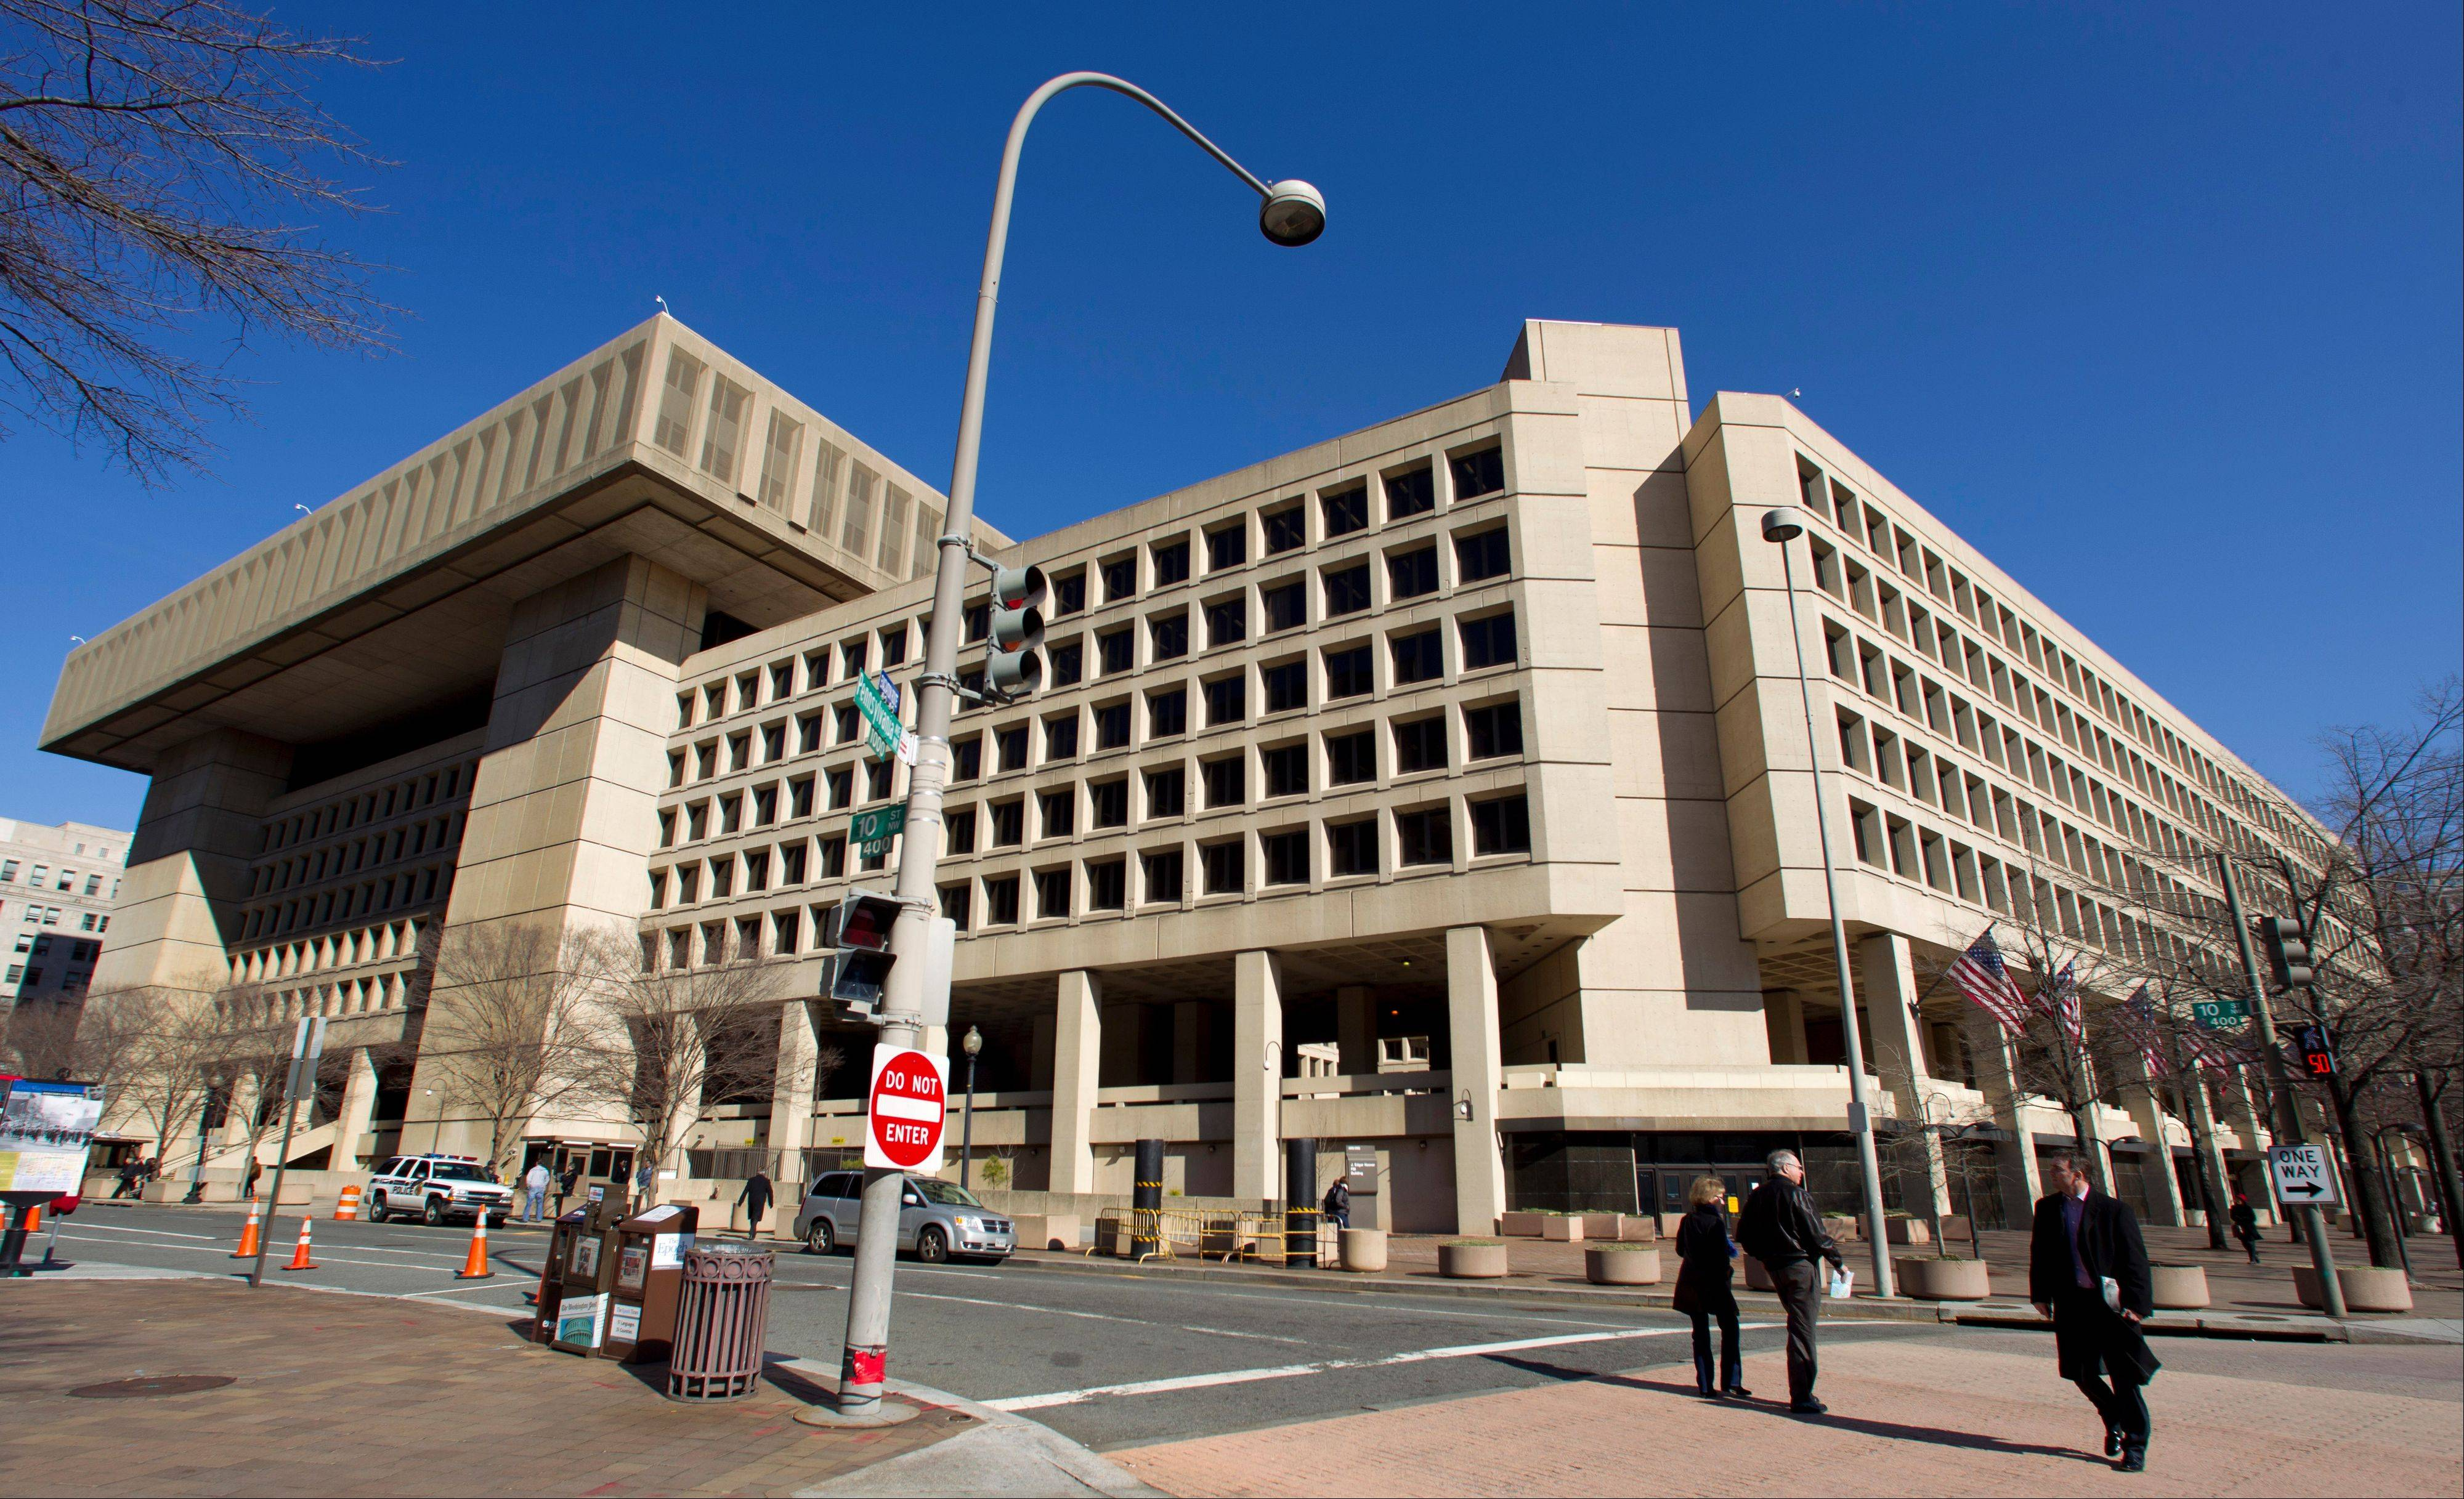 Associated Press/Feb. 3, 2012The Federal Bureau of Investigation headquarters on Pennsylvania Avenue in Washington, which opened in 1974.